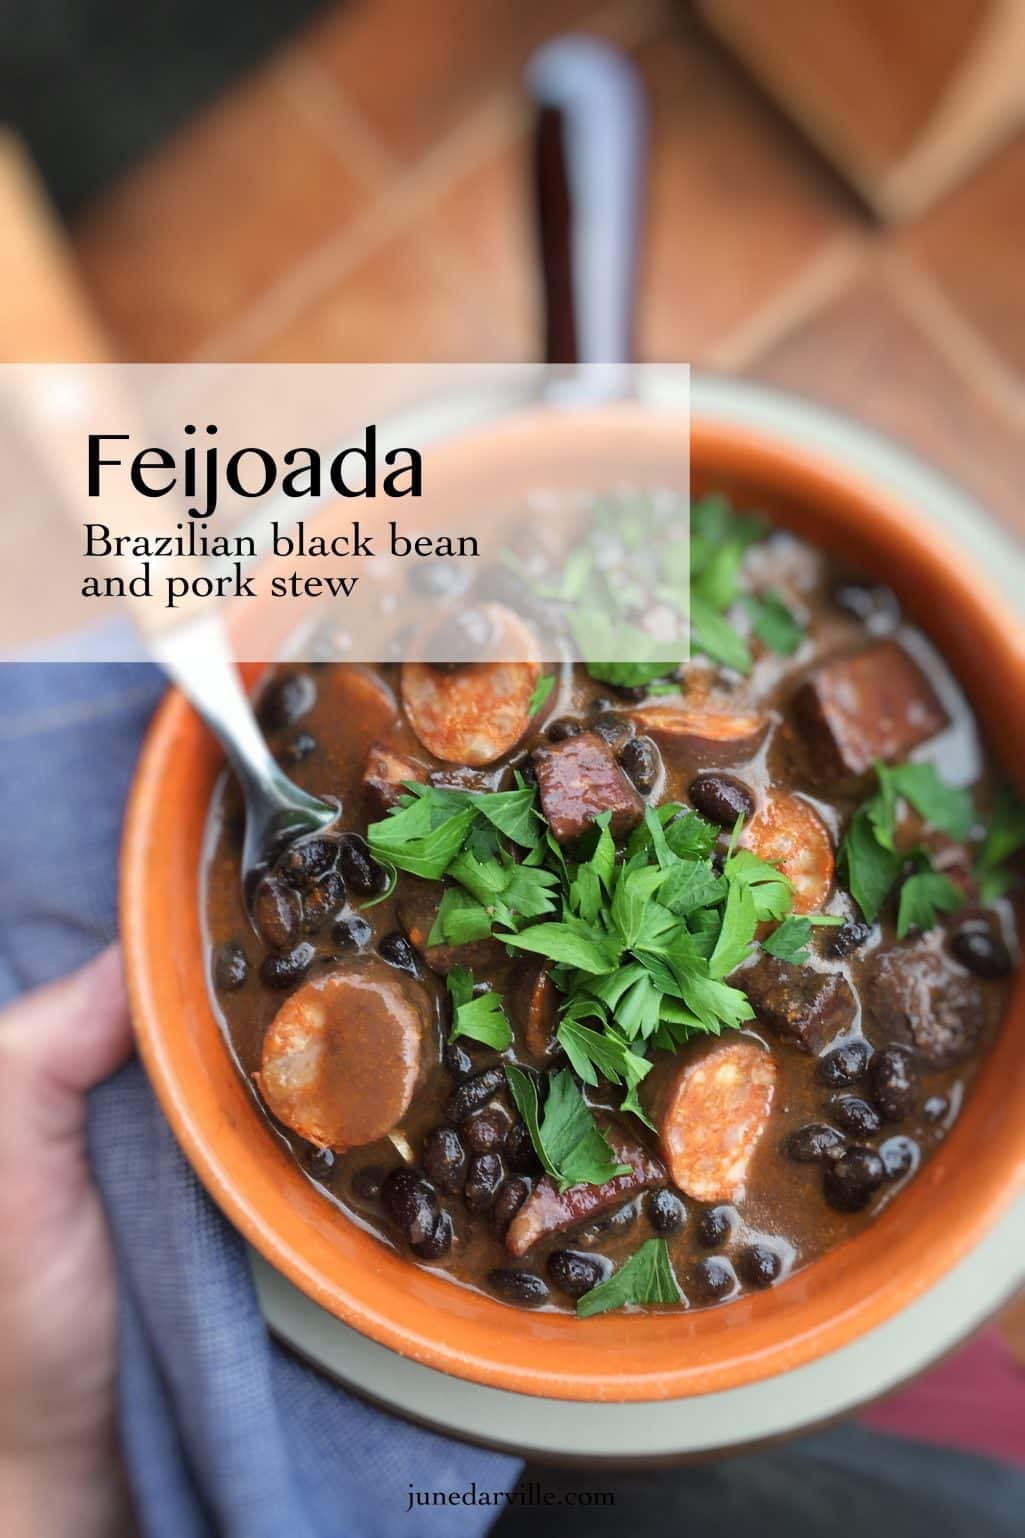 Here's my version of the popular Brazilian feijoada bean stew! Smooth black beans, pork sausage and minced meat... What a treat!